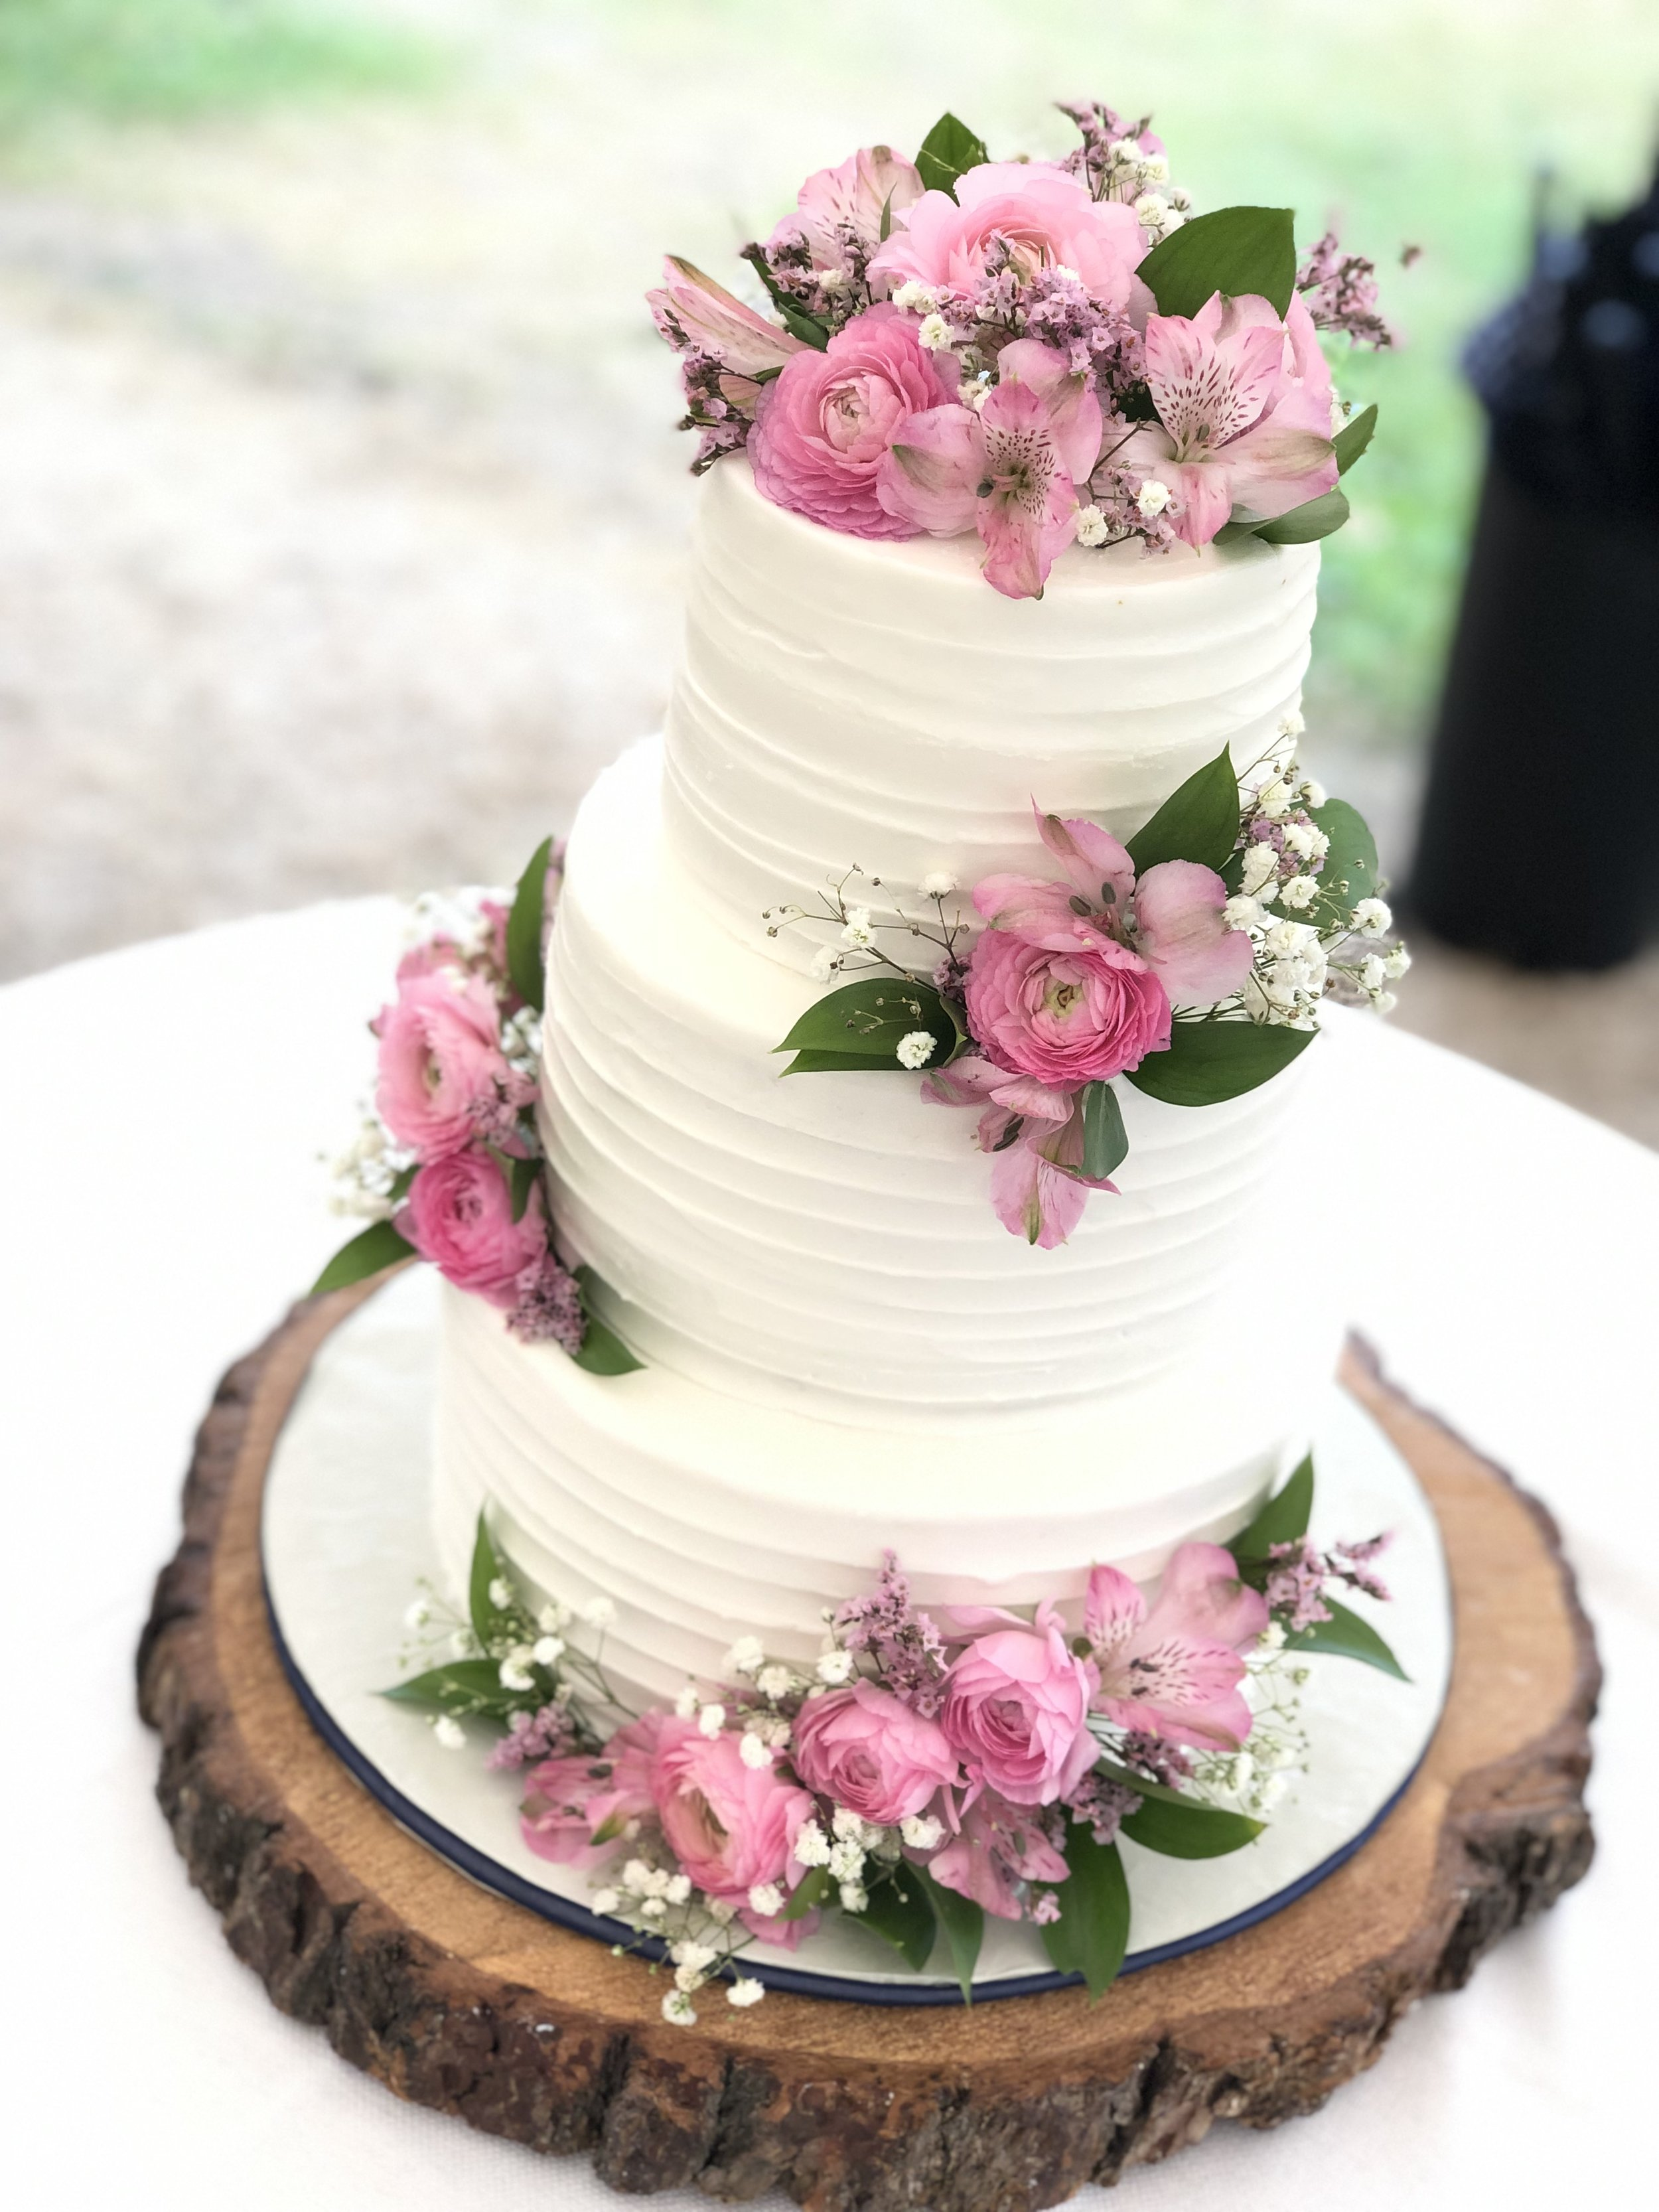 Textured Buttercream - You can choose your style of icing texture.You can add an ombre colors for an additional charge.Includes fresh flower arrangementIncludes a custom board to match(size shown: 74 servings)